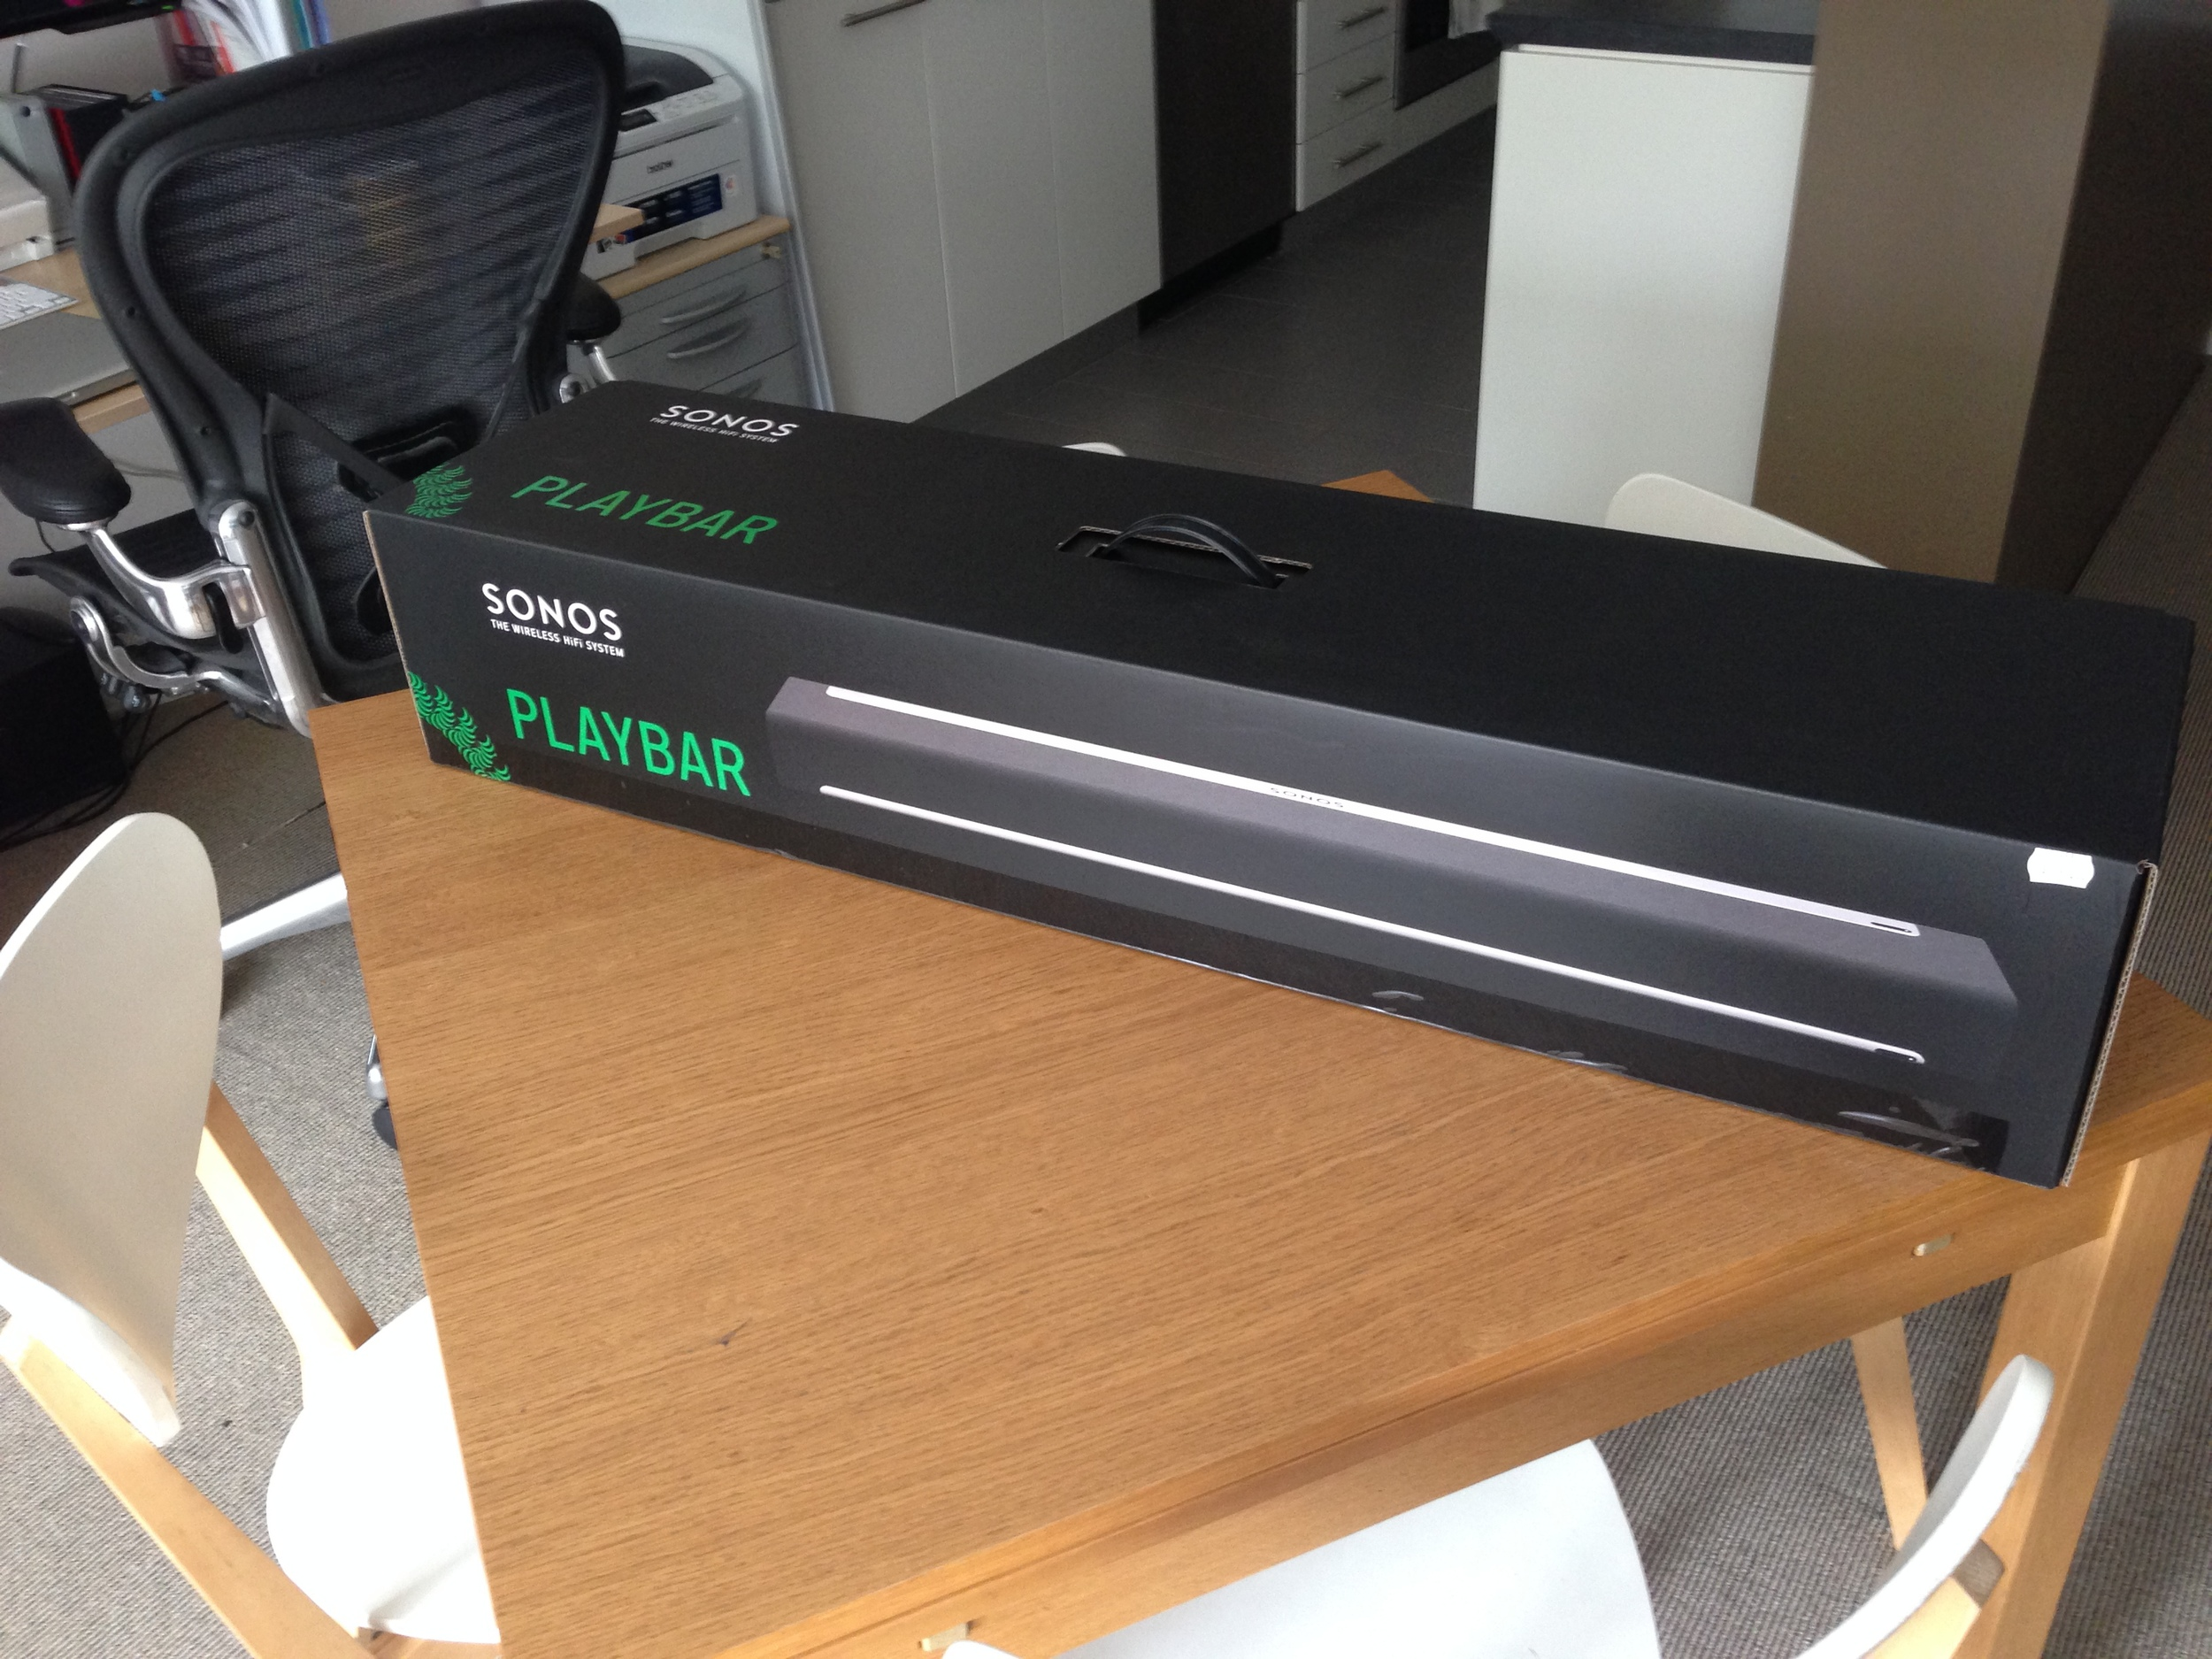 ANOTHER new toy - SONOS Playbar....but no unboxing videos here.